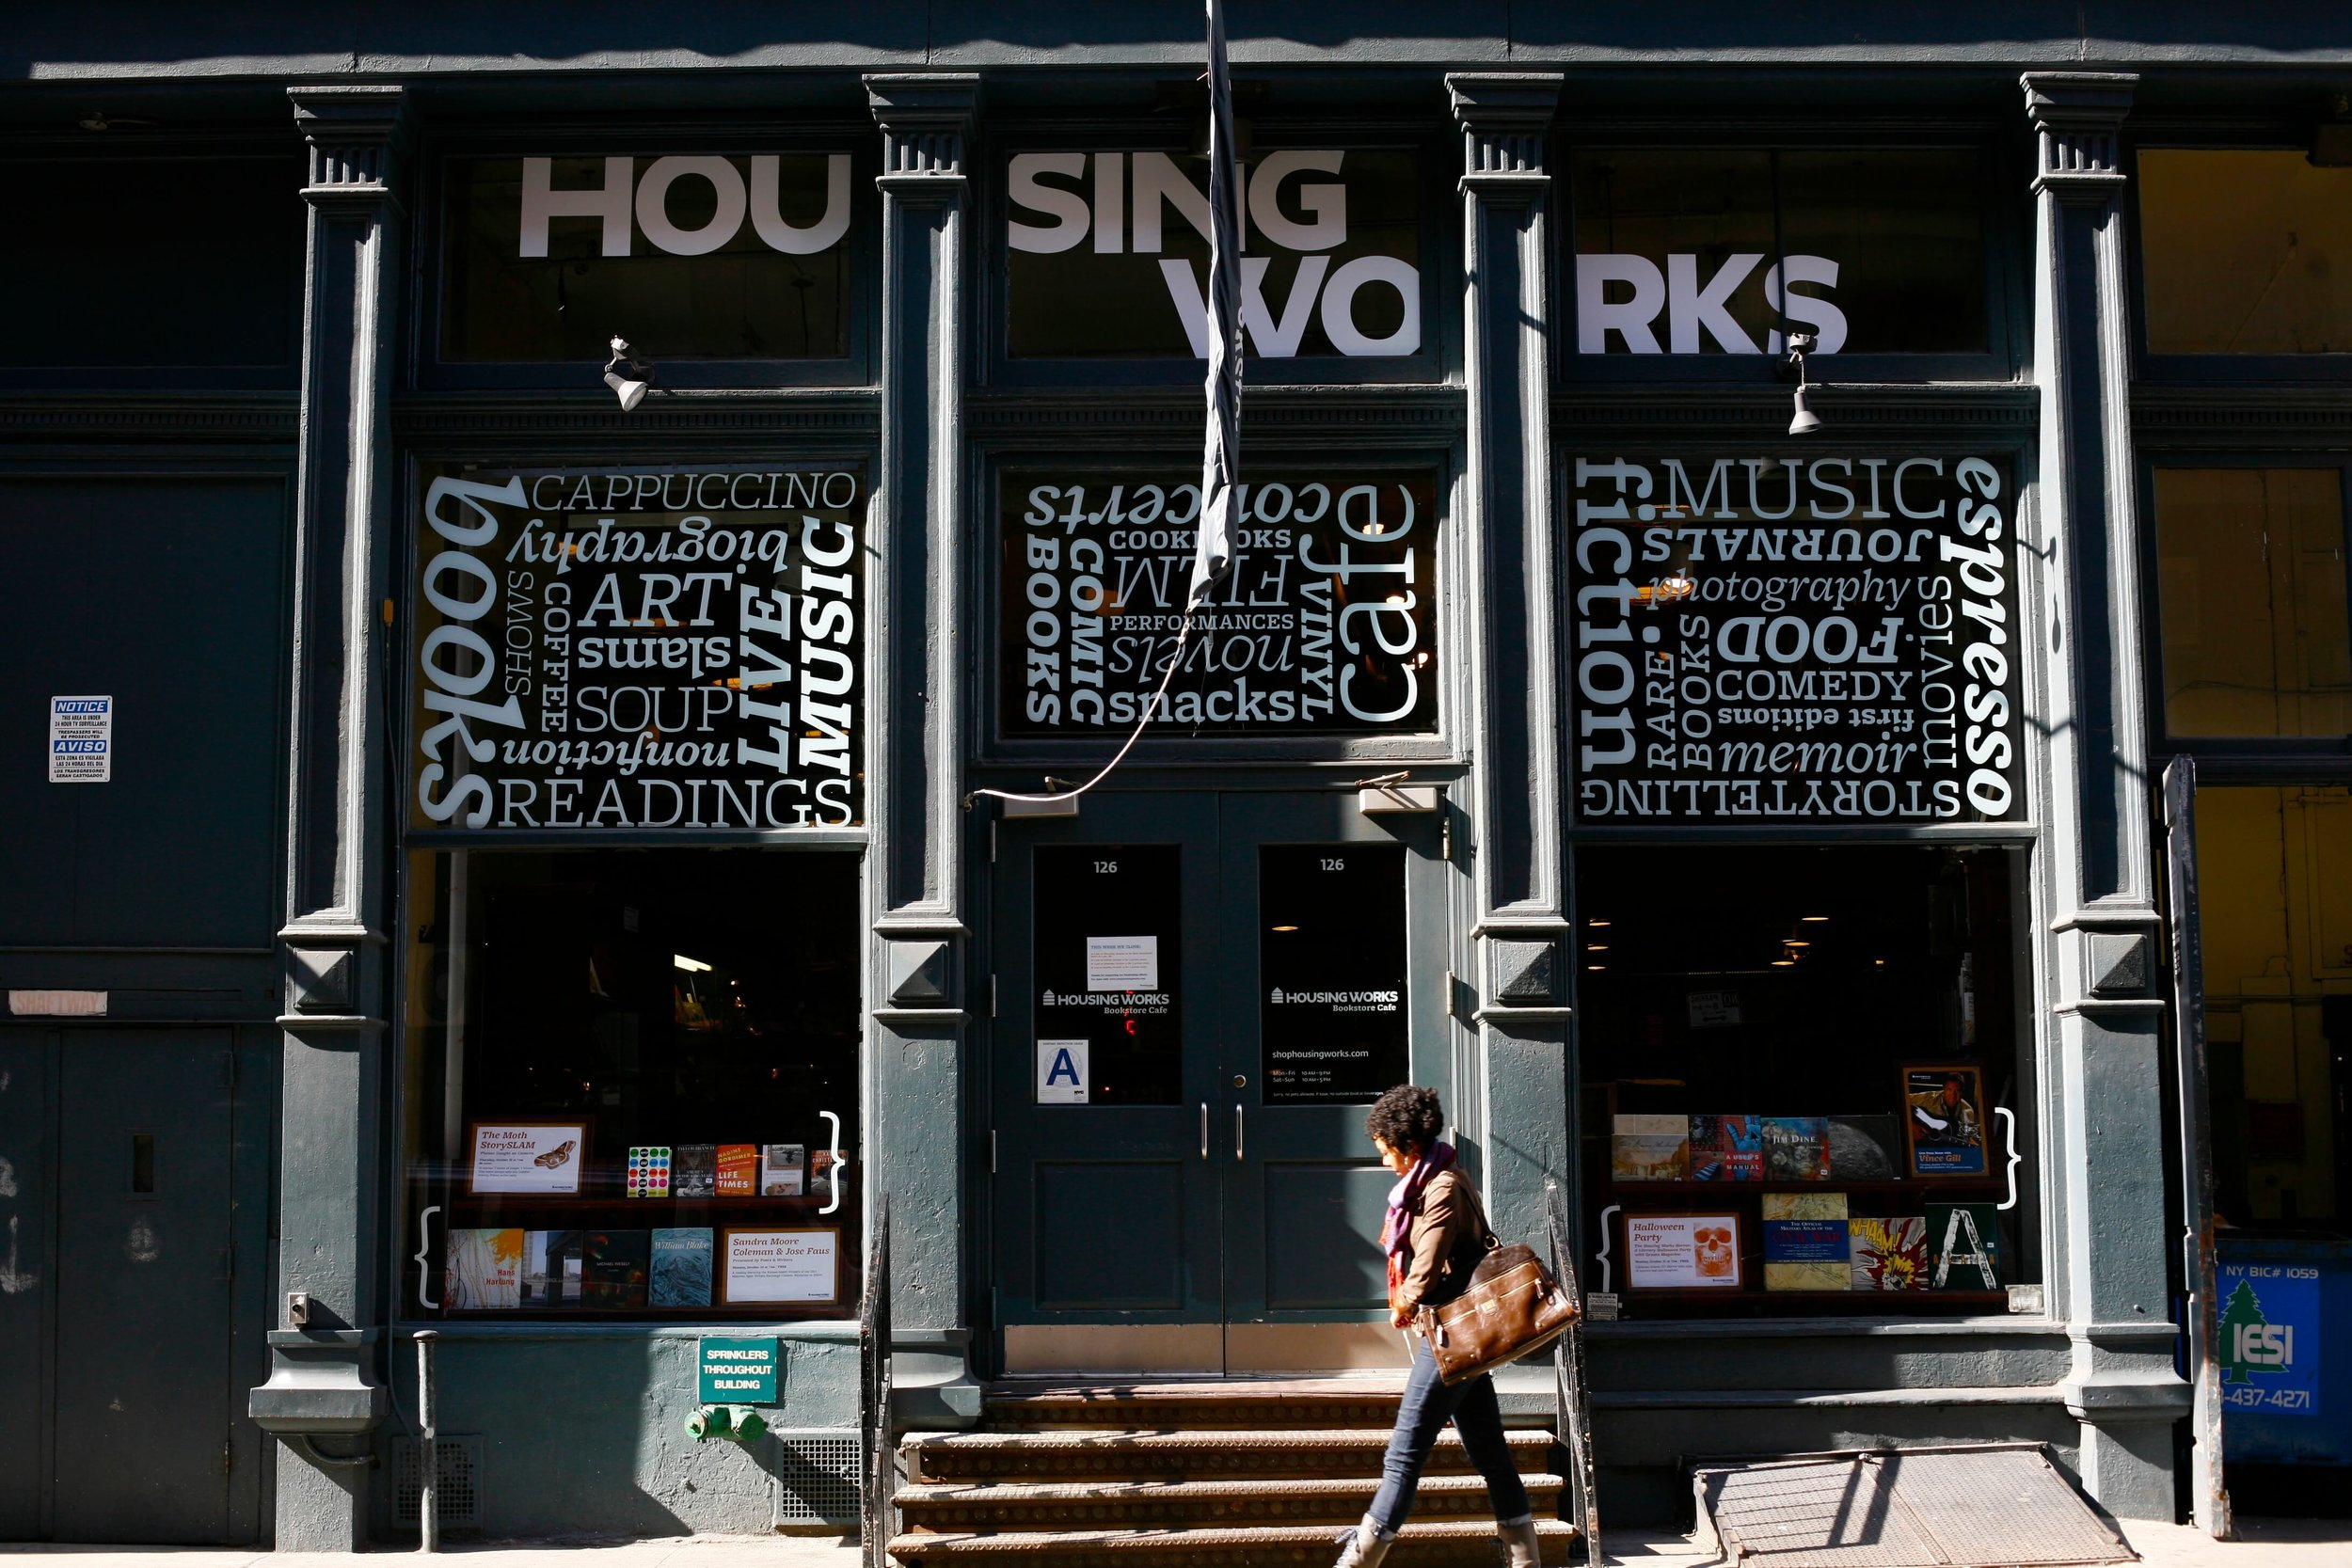 Housing works bookstore & cafe